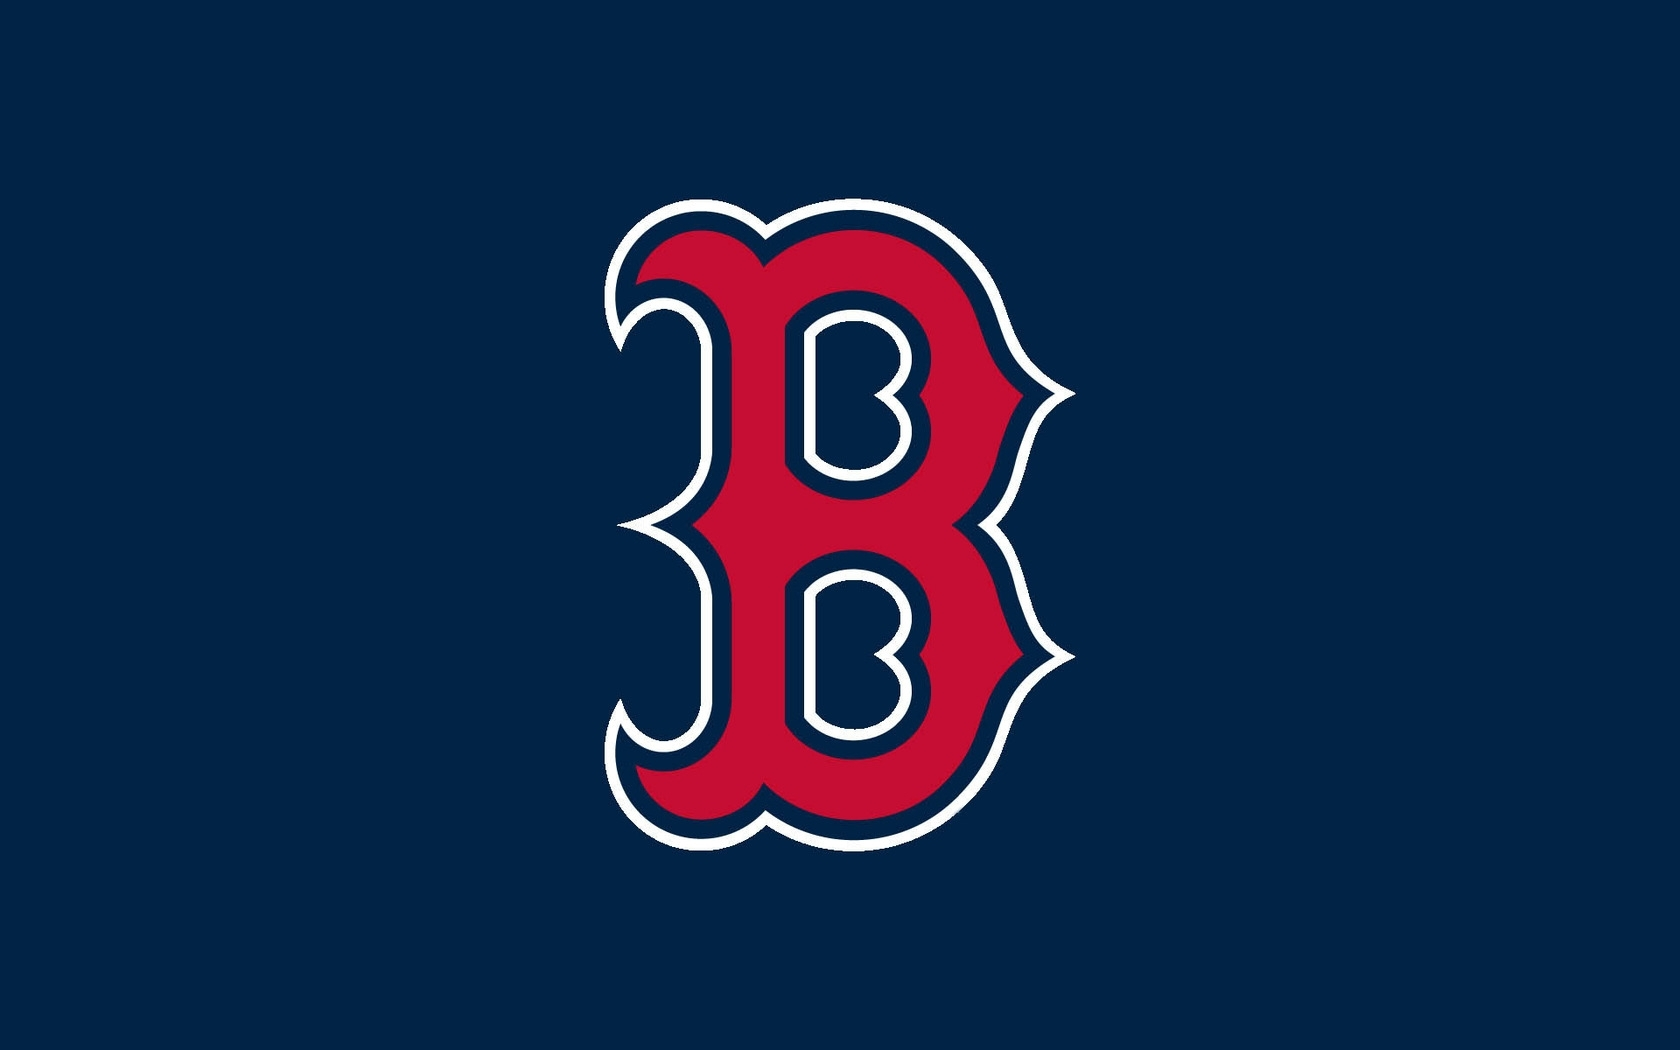 pinovidiu drobotă on wallpapers | pinterest | boston red sox